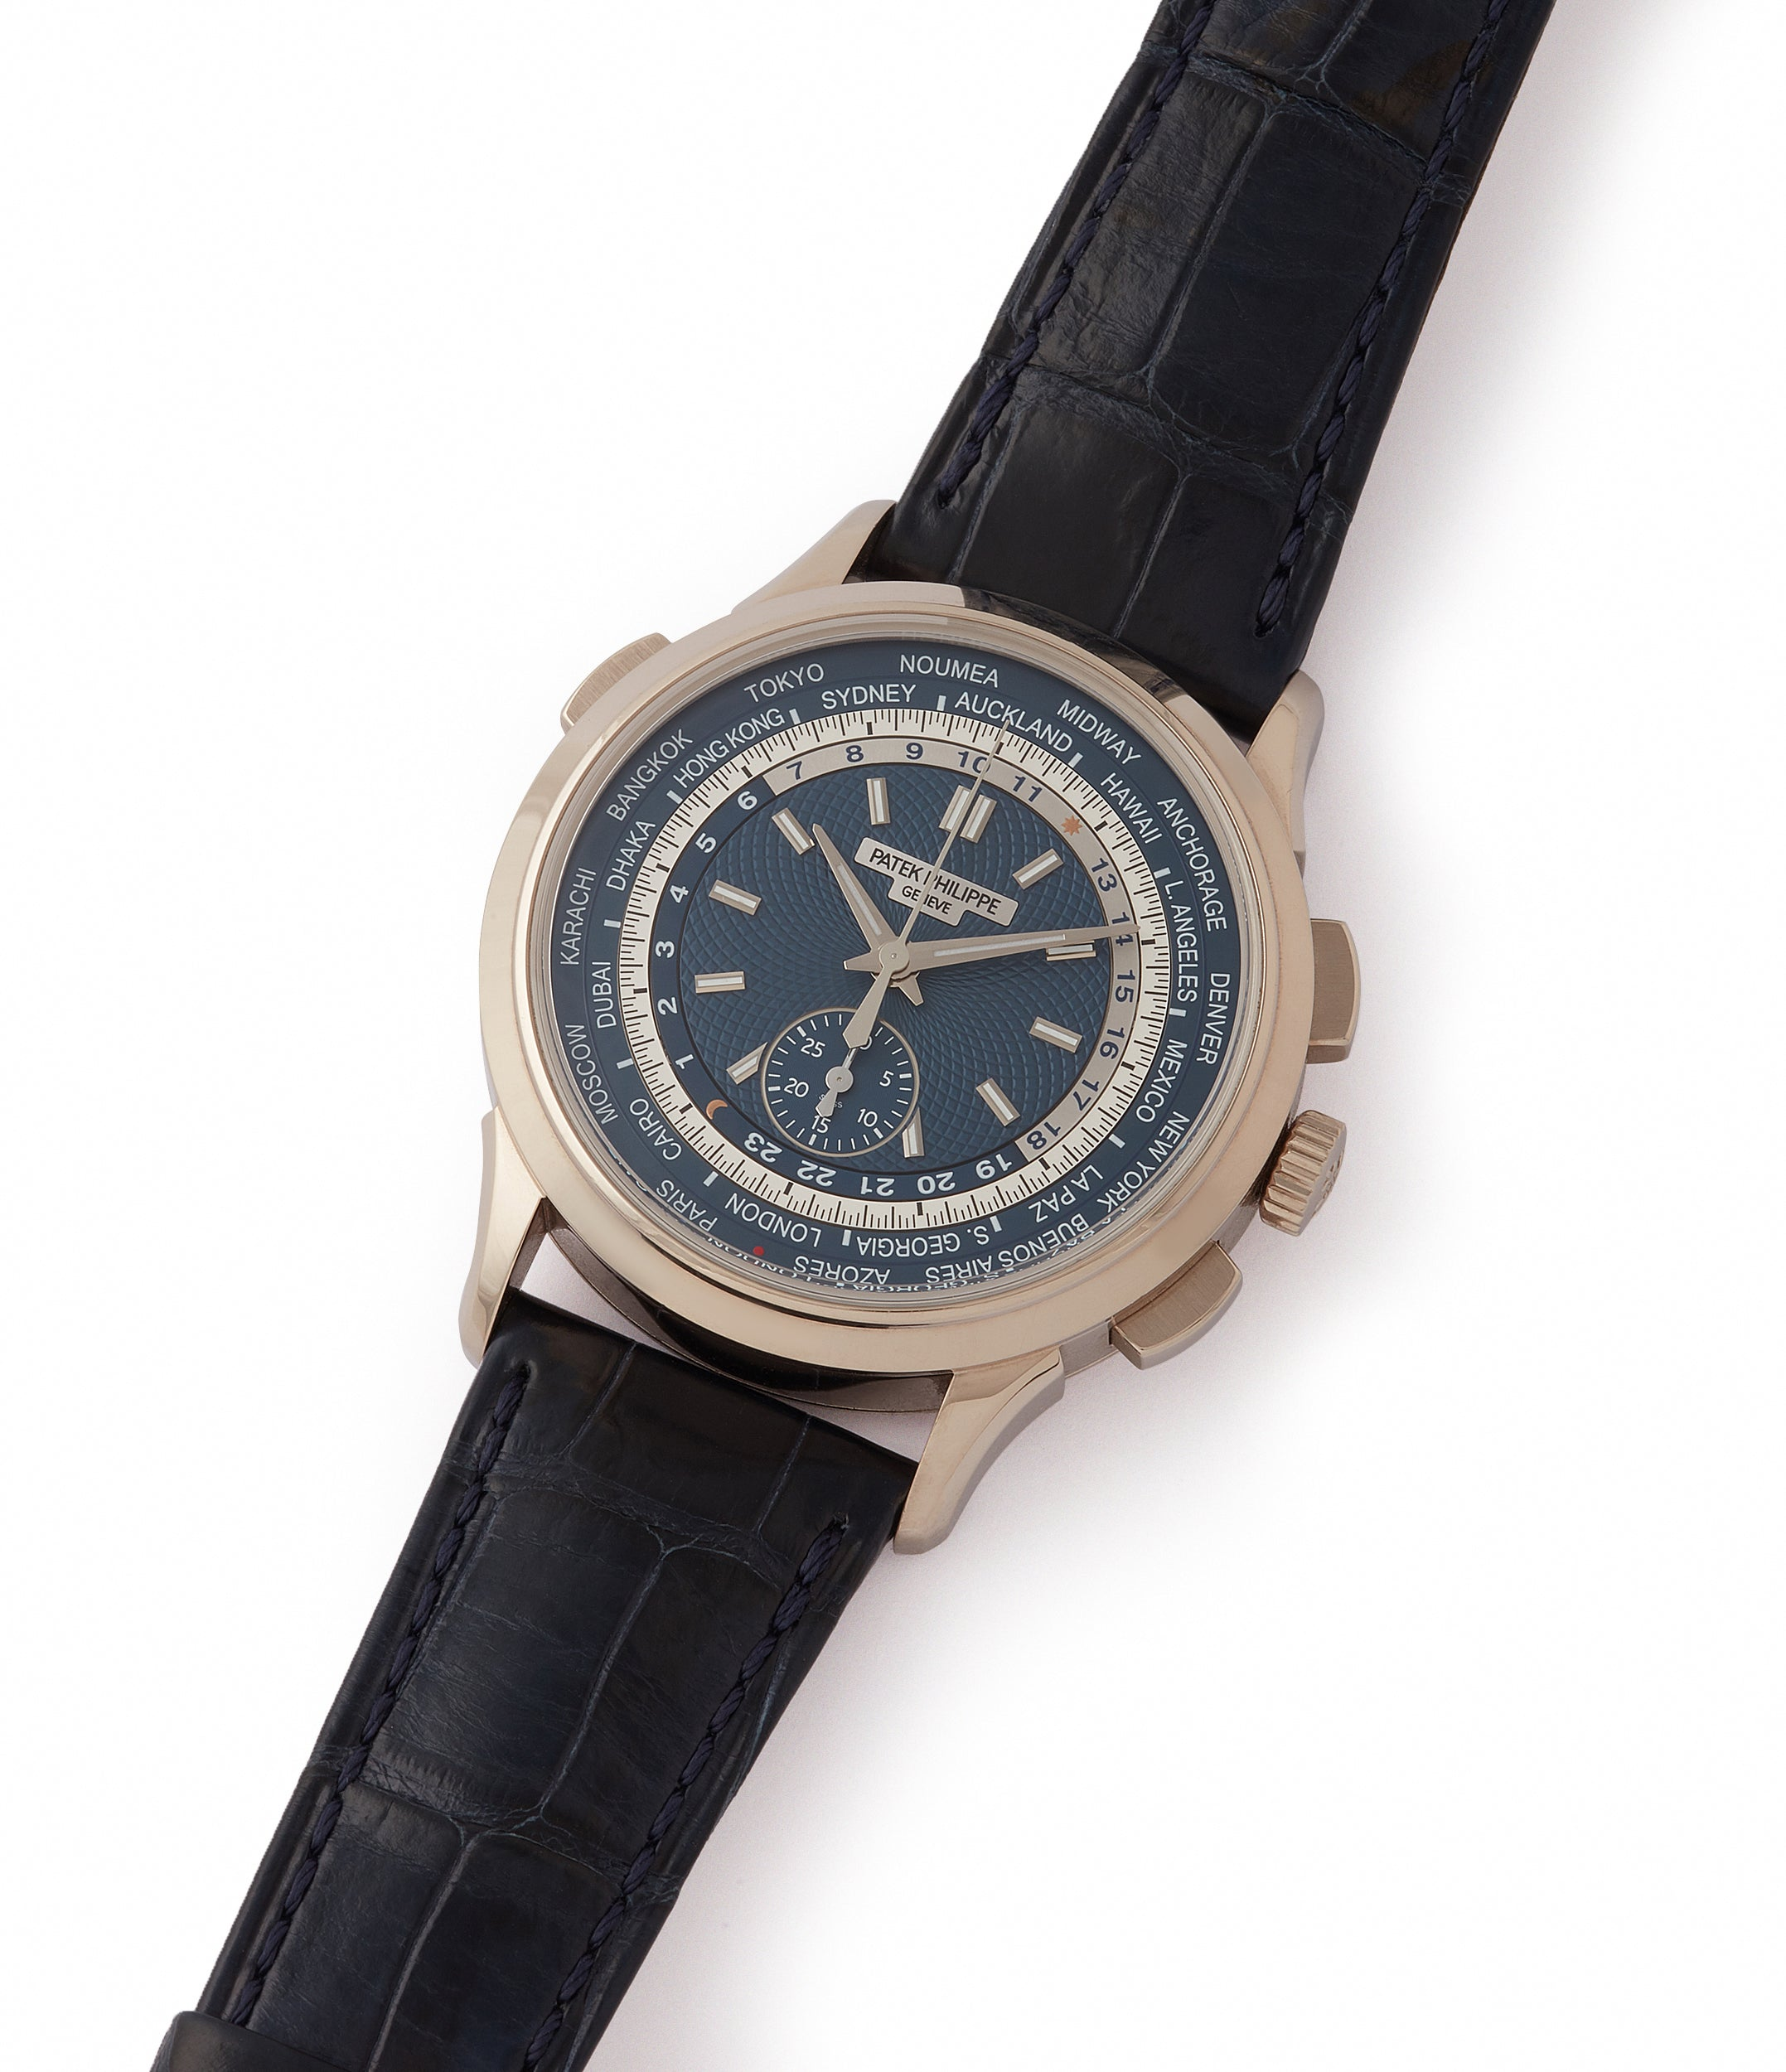 shop pre-owned Patek Philippe World Time Chronograph 5930G-001 white gold watch blue dial for sale online at A Collected Man London